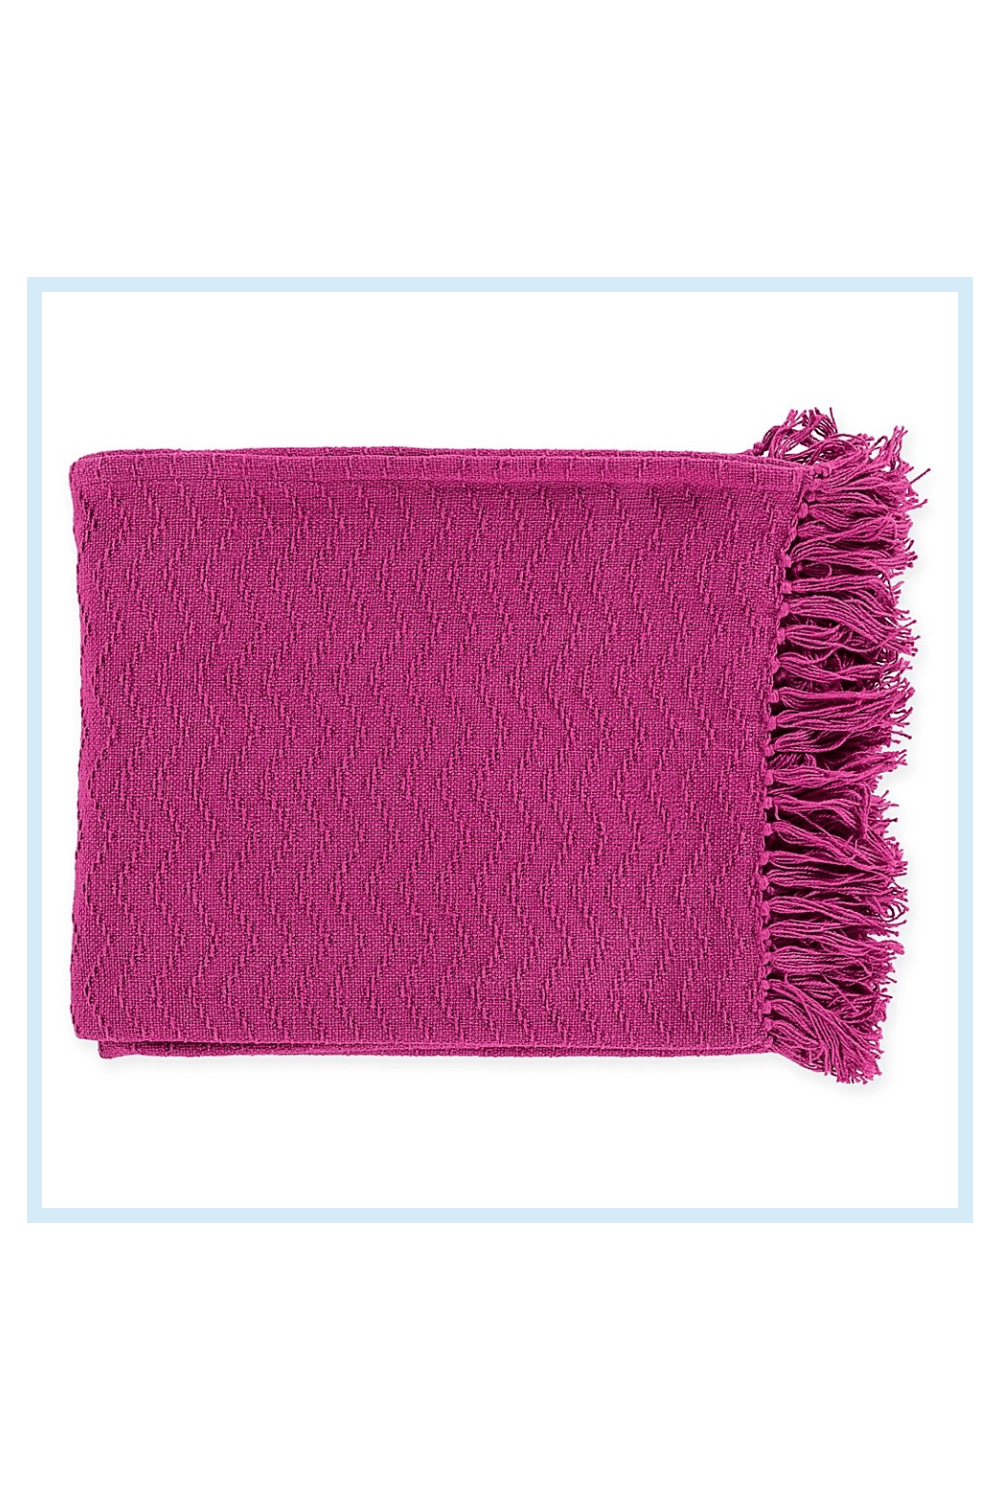 Photo of Surya Thelma Throw Blanket In Bright Pink